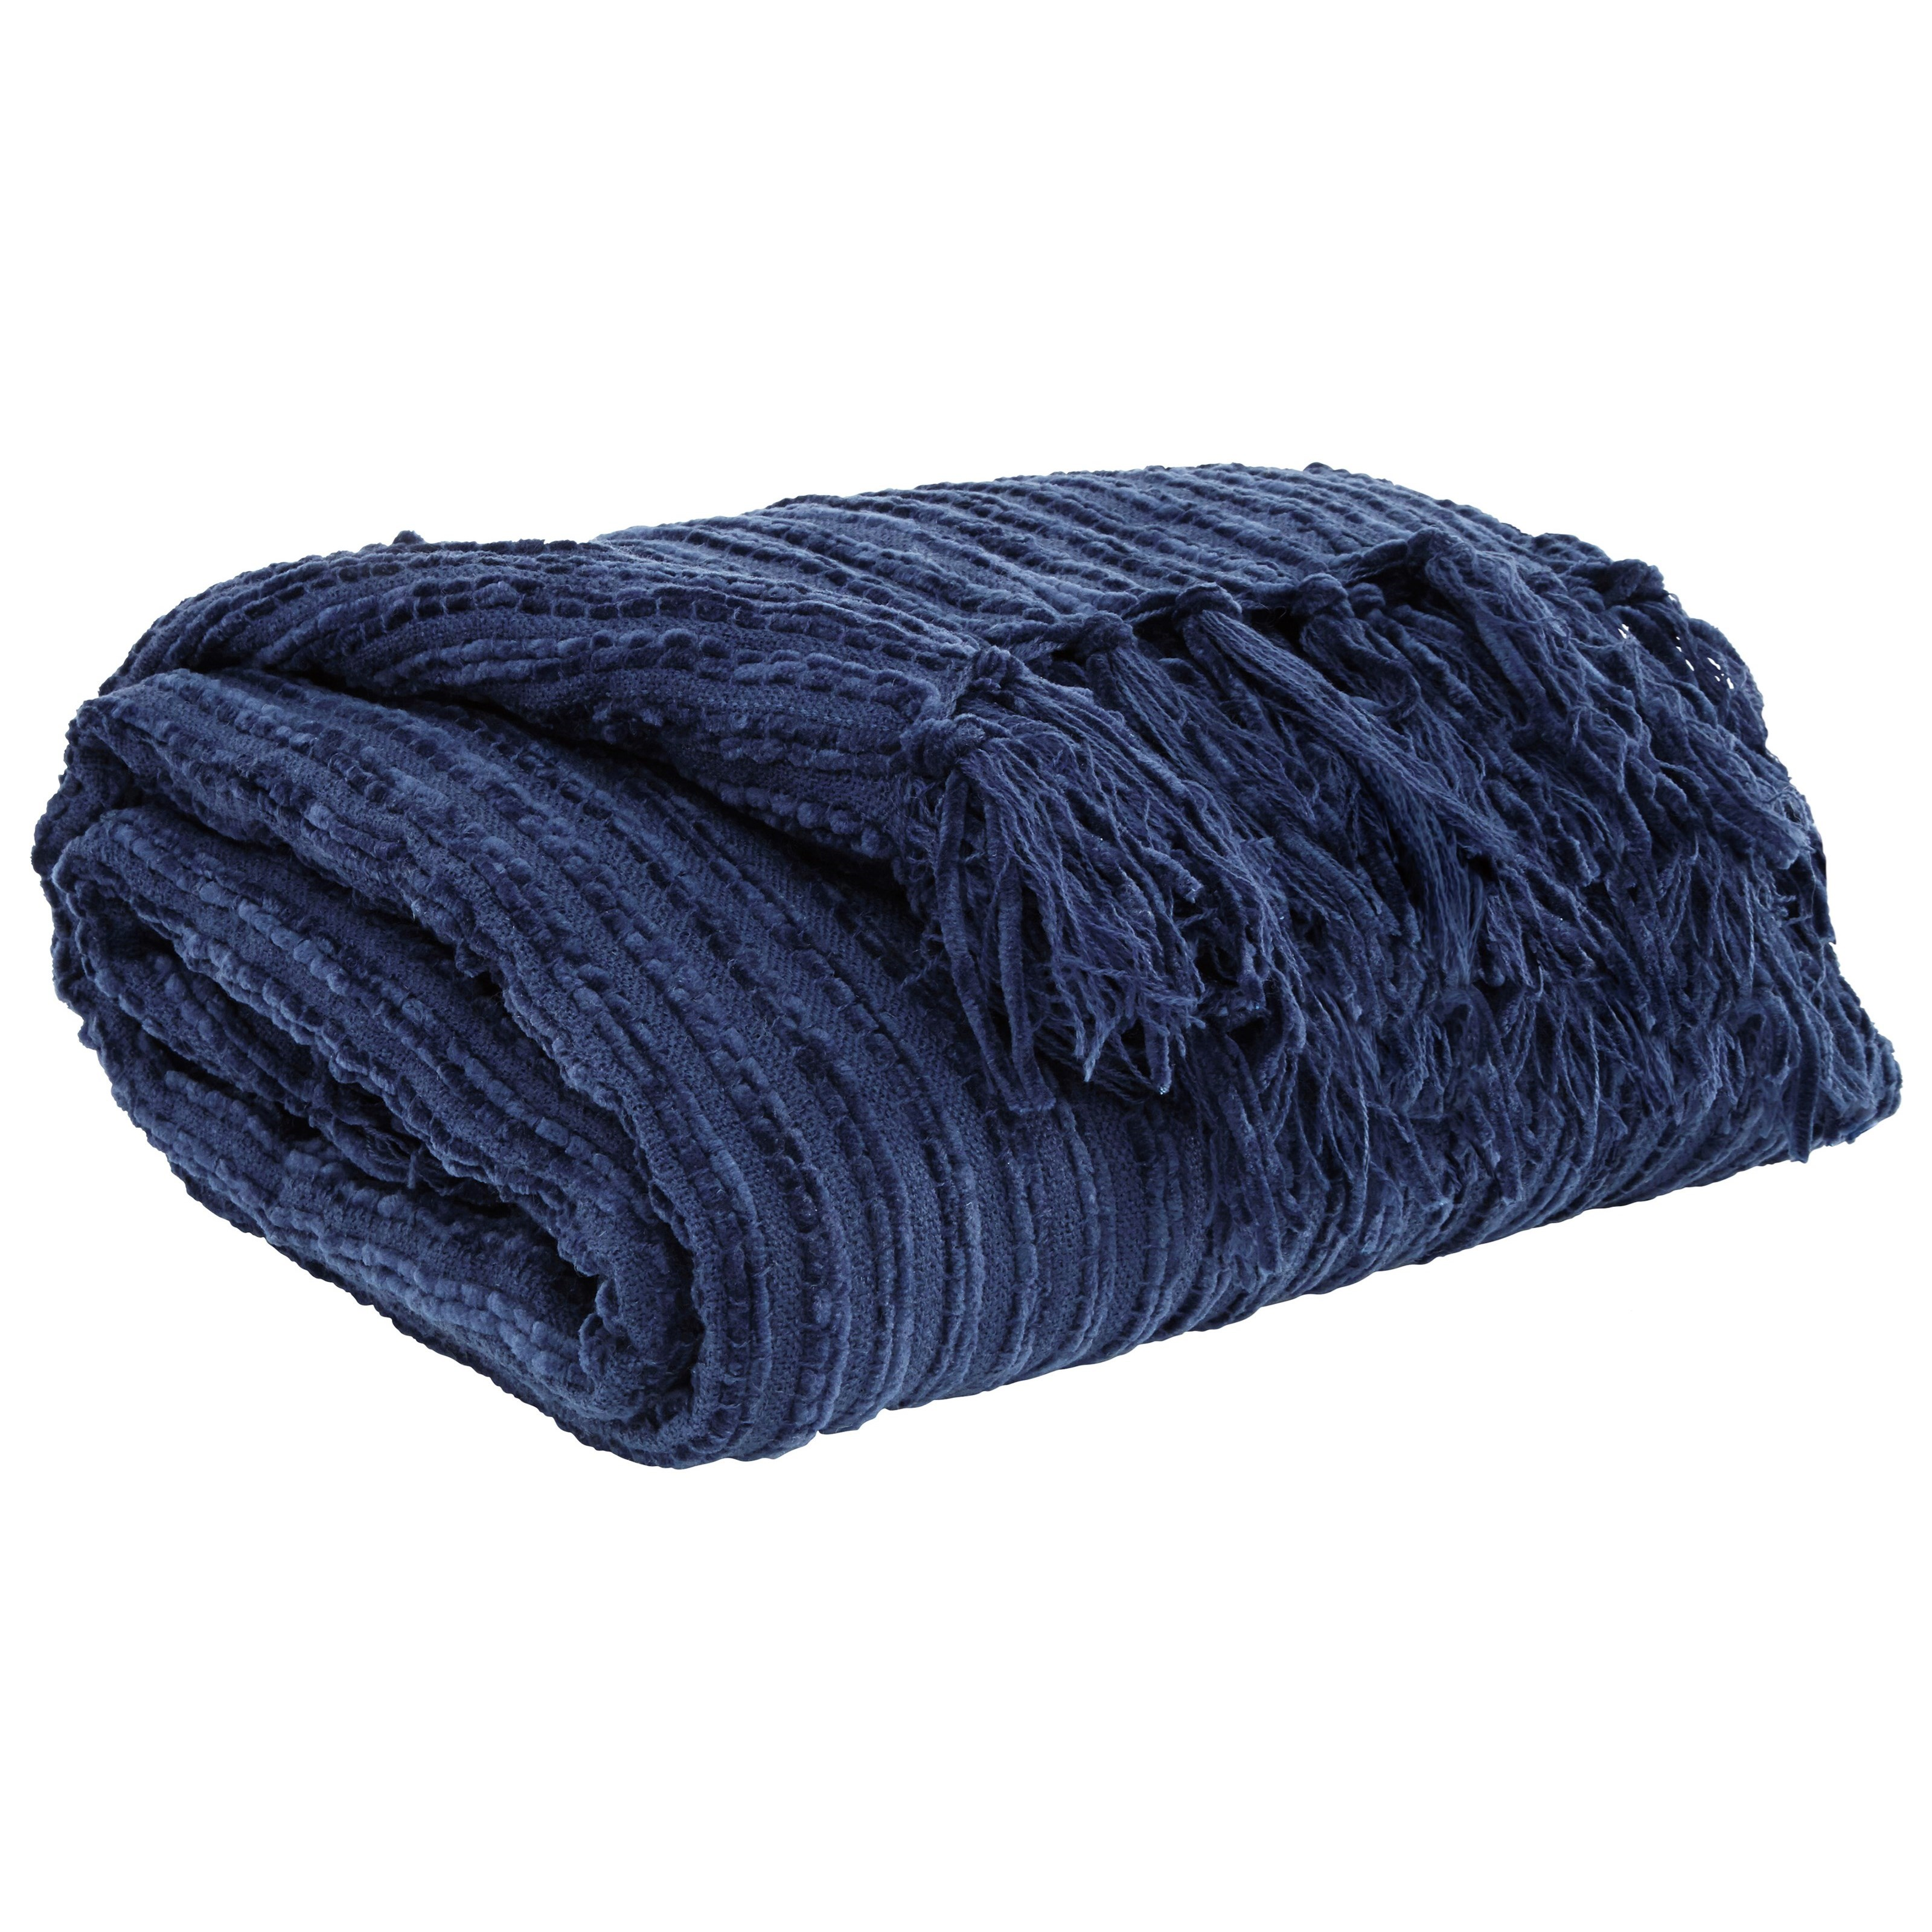 Signature Design by Ashley Throws Noland - Navy Throw - Item Number: A1000083T